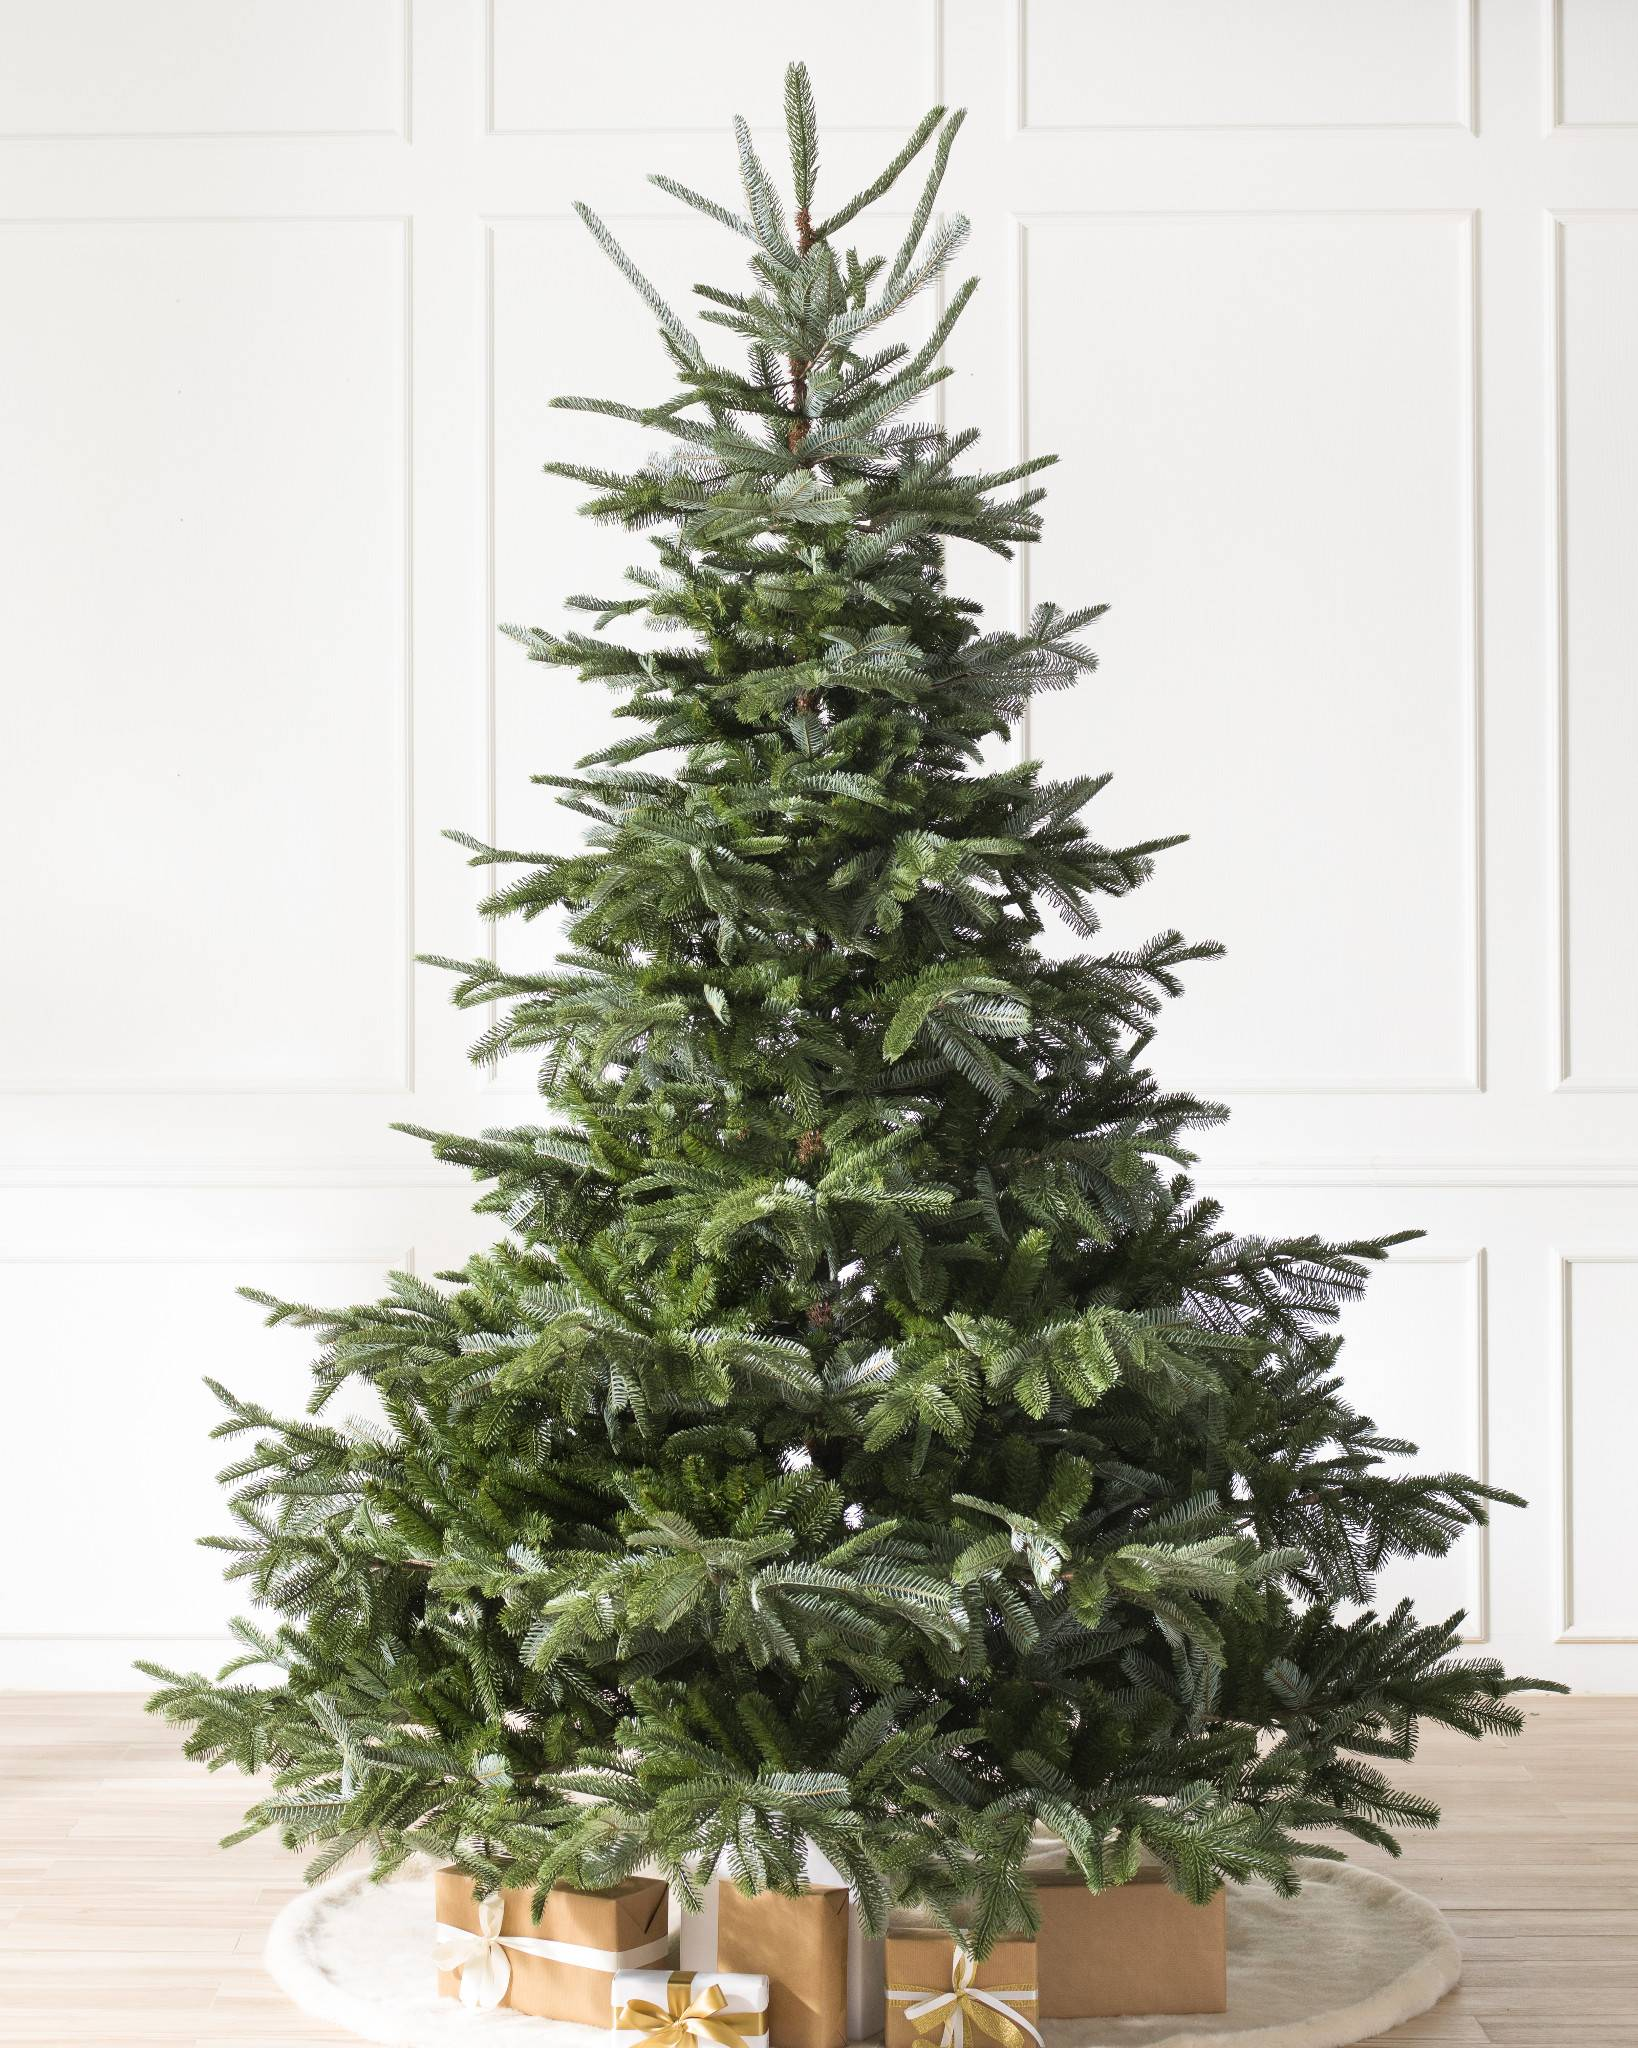 European Fir Artificial Christmas Tree by Balsam Hill. UNLIT